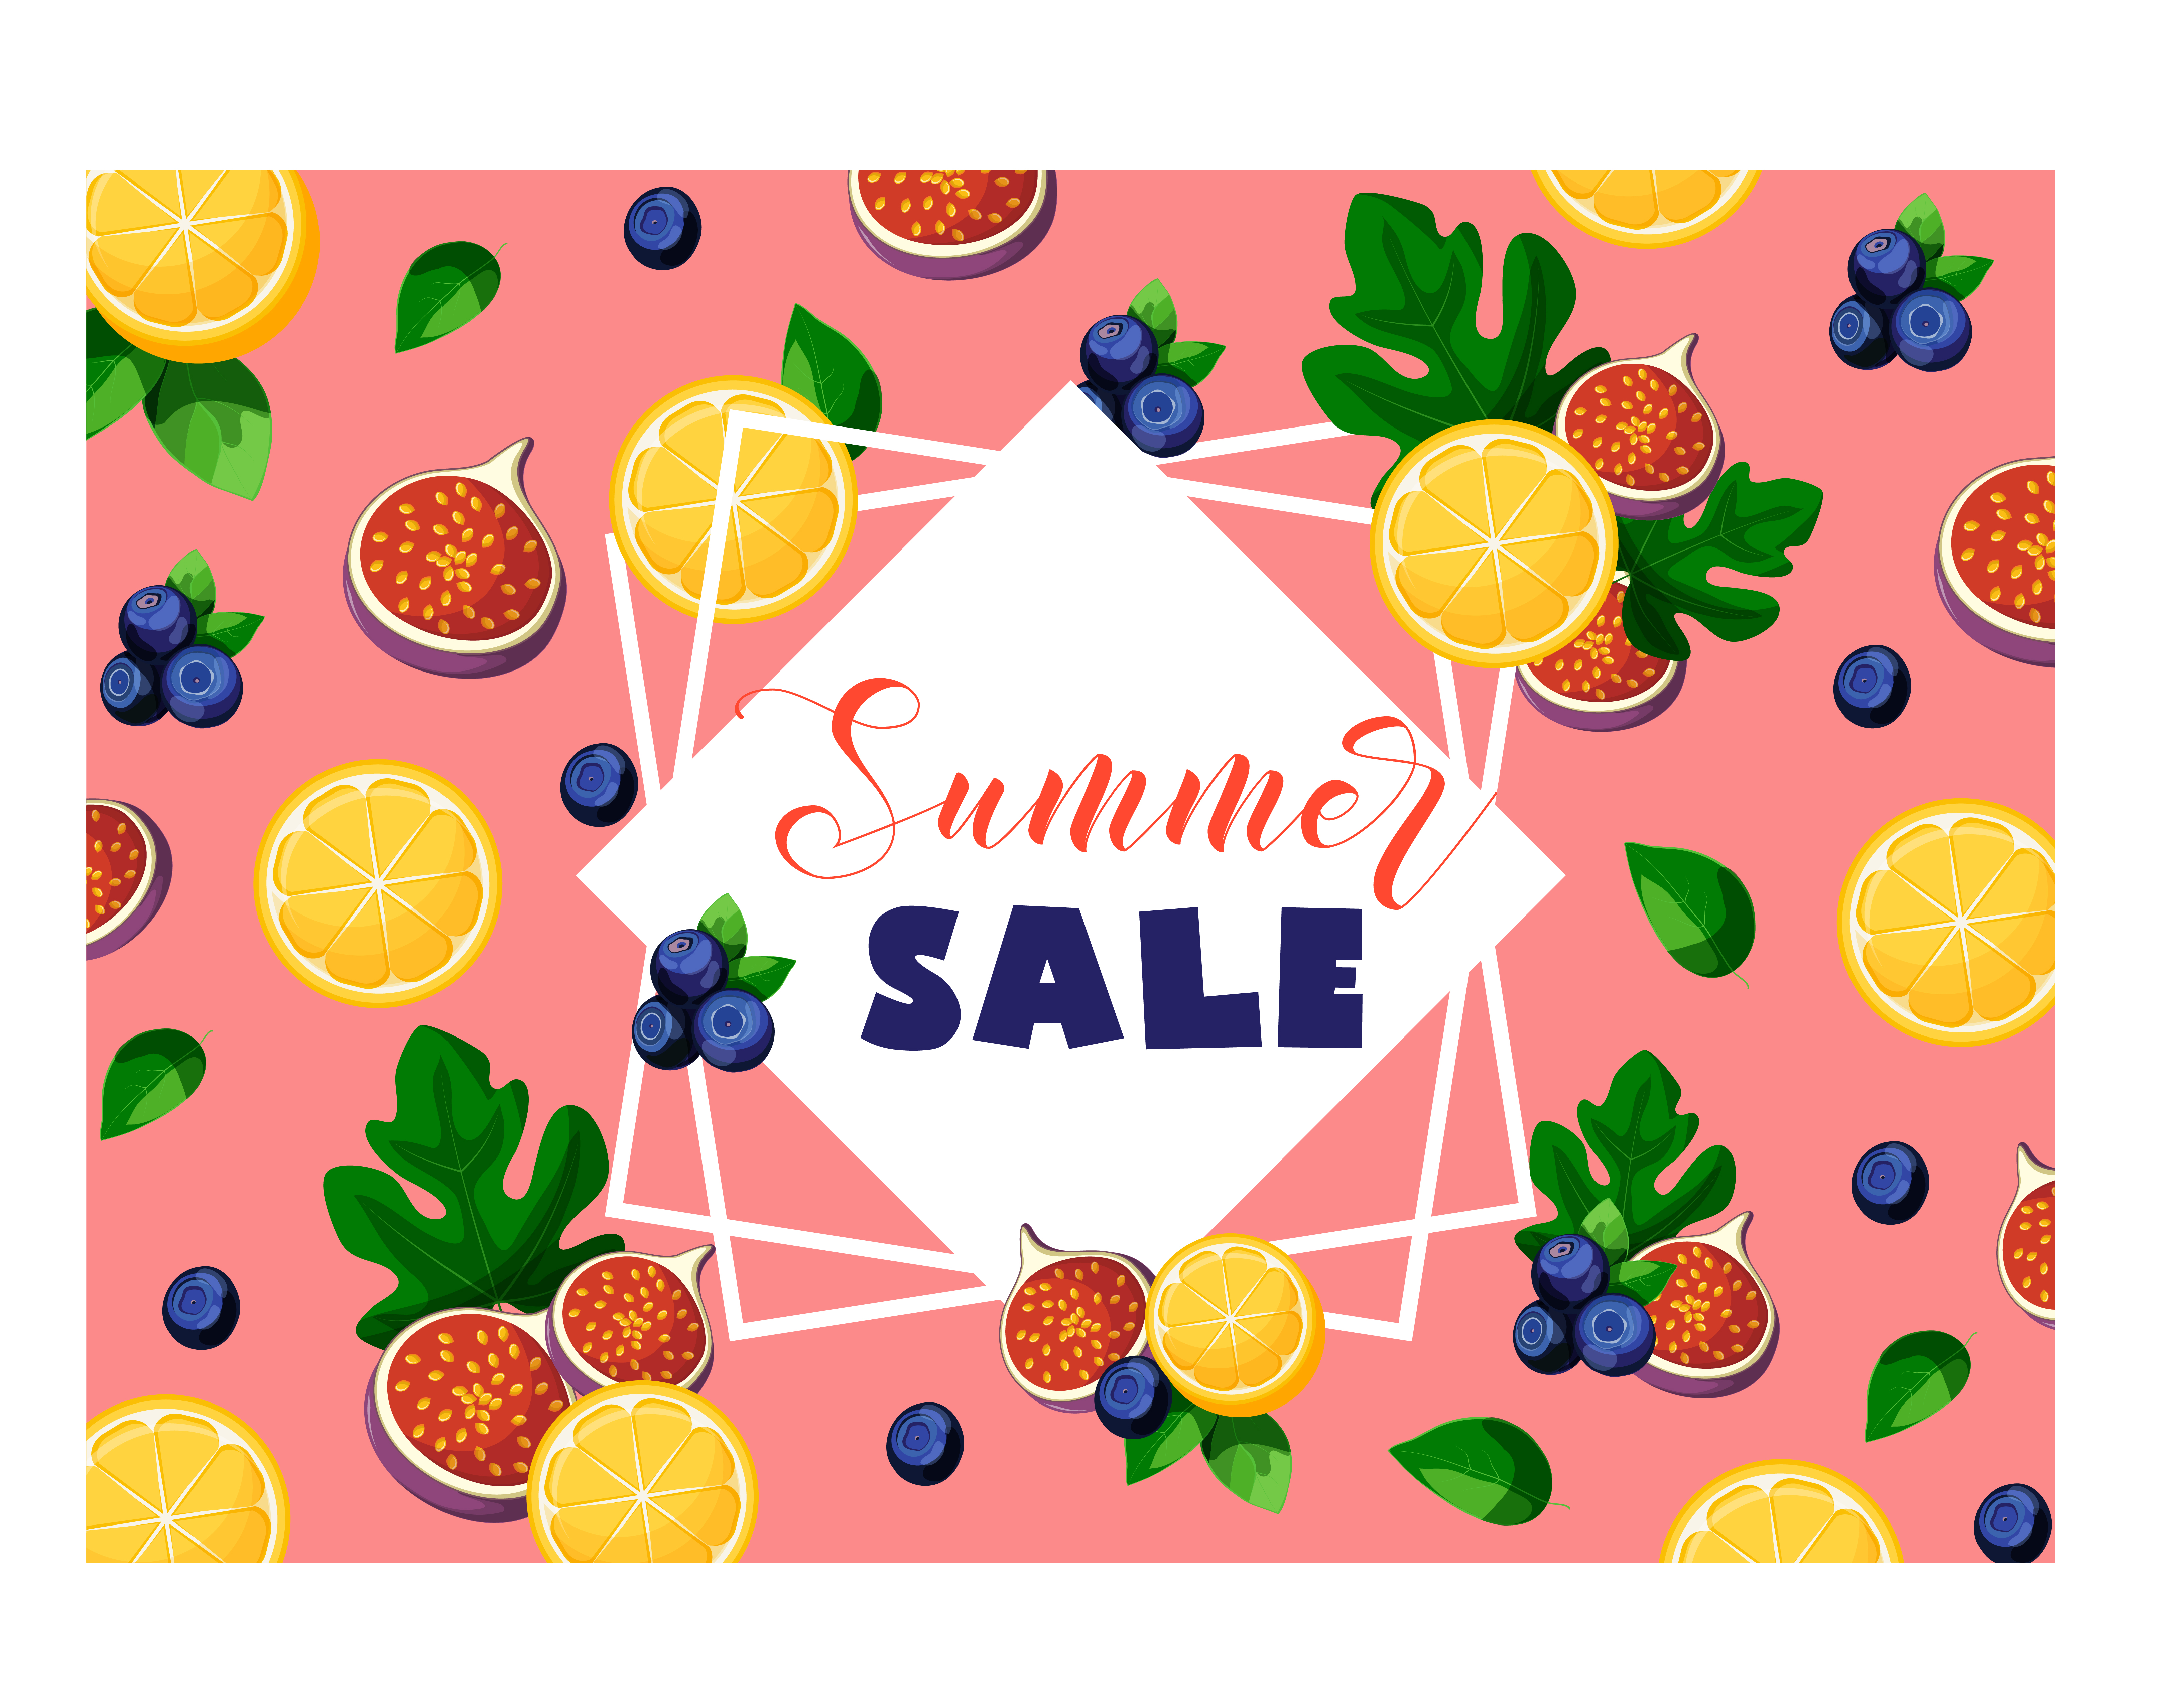 Berries clipart banner. Summer sale with fruits